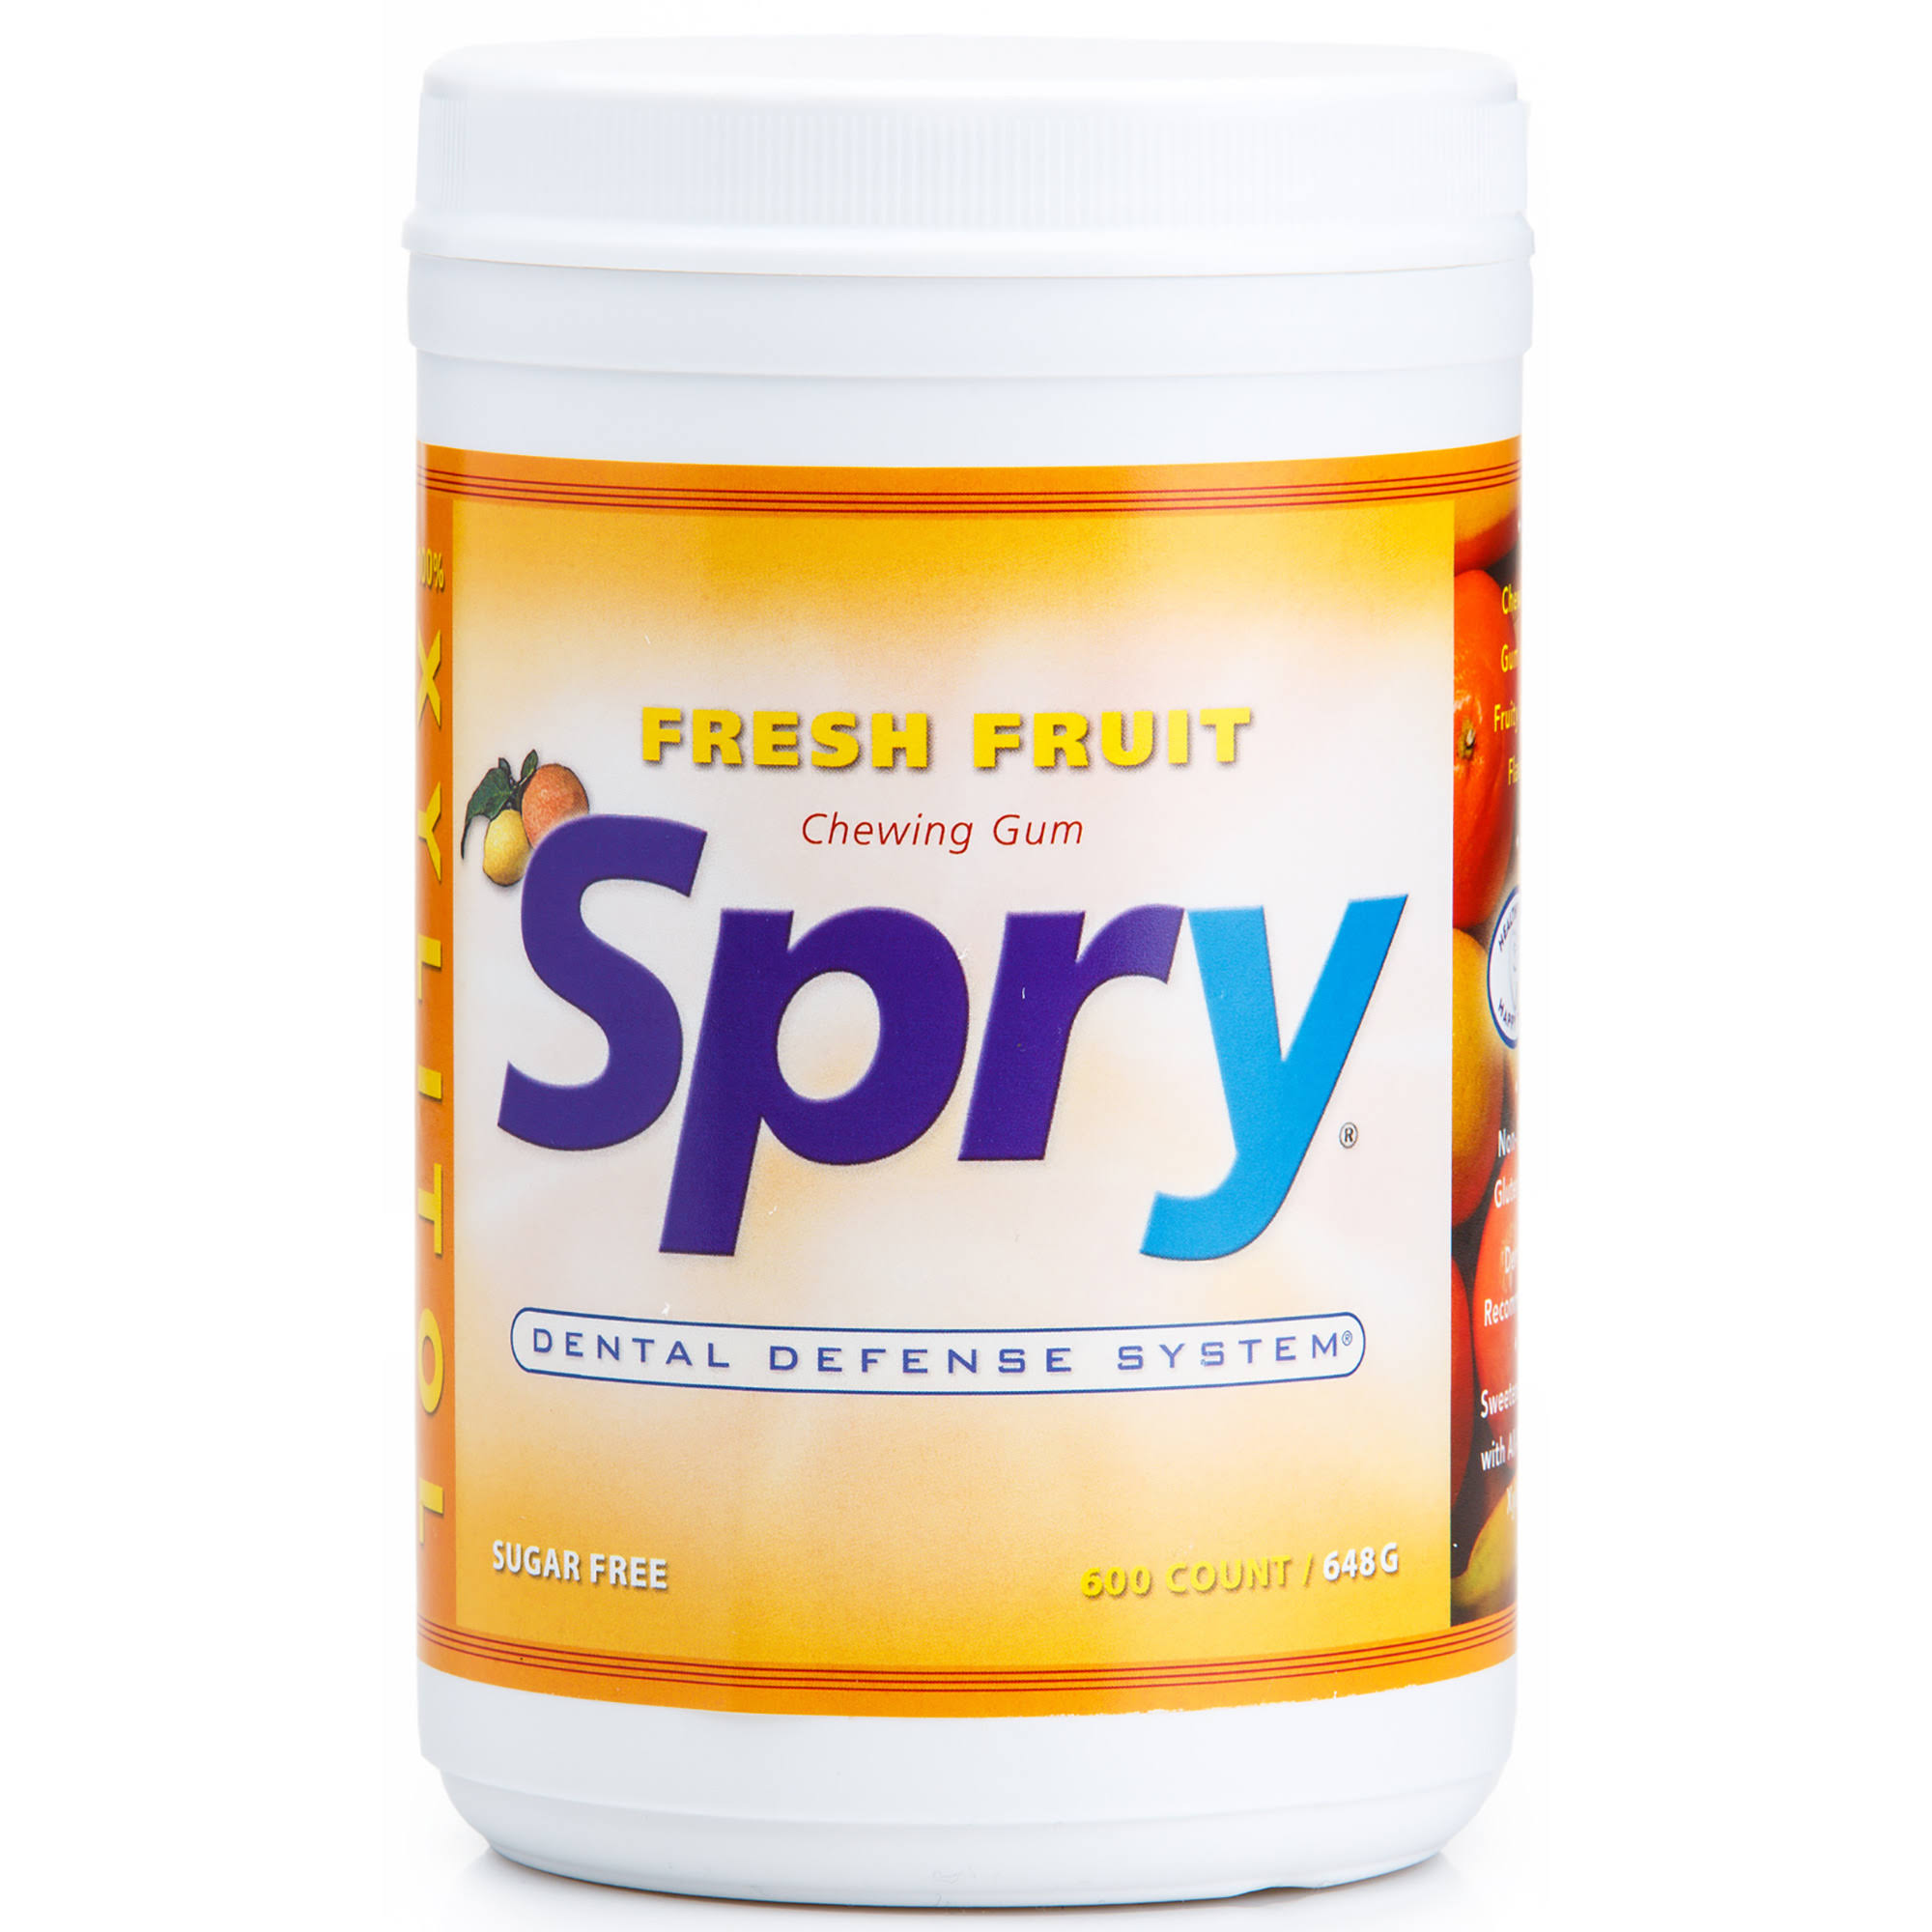 Spry Chewing Gum - Fresh Fruit, 648g, 600 Pieces